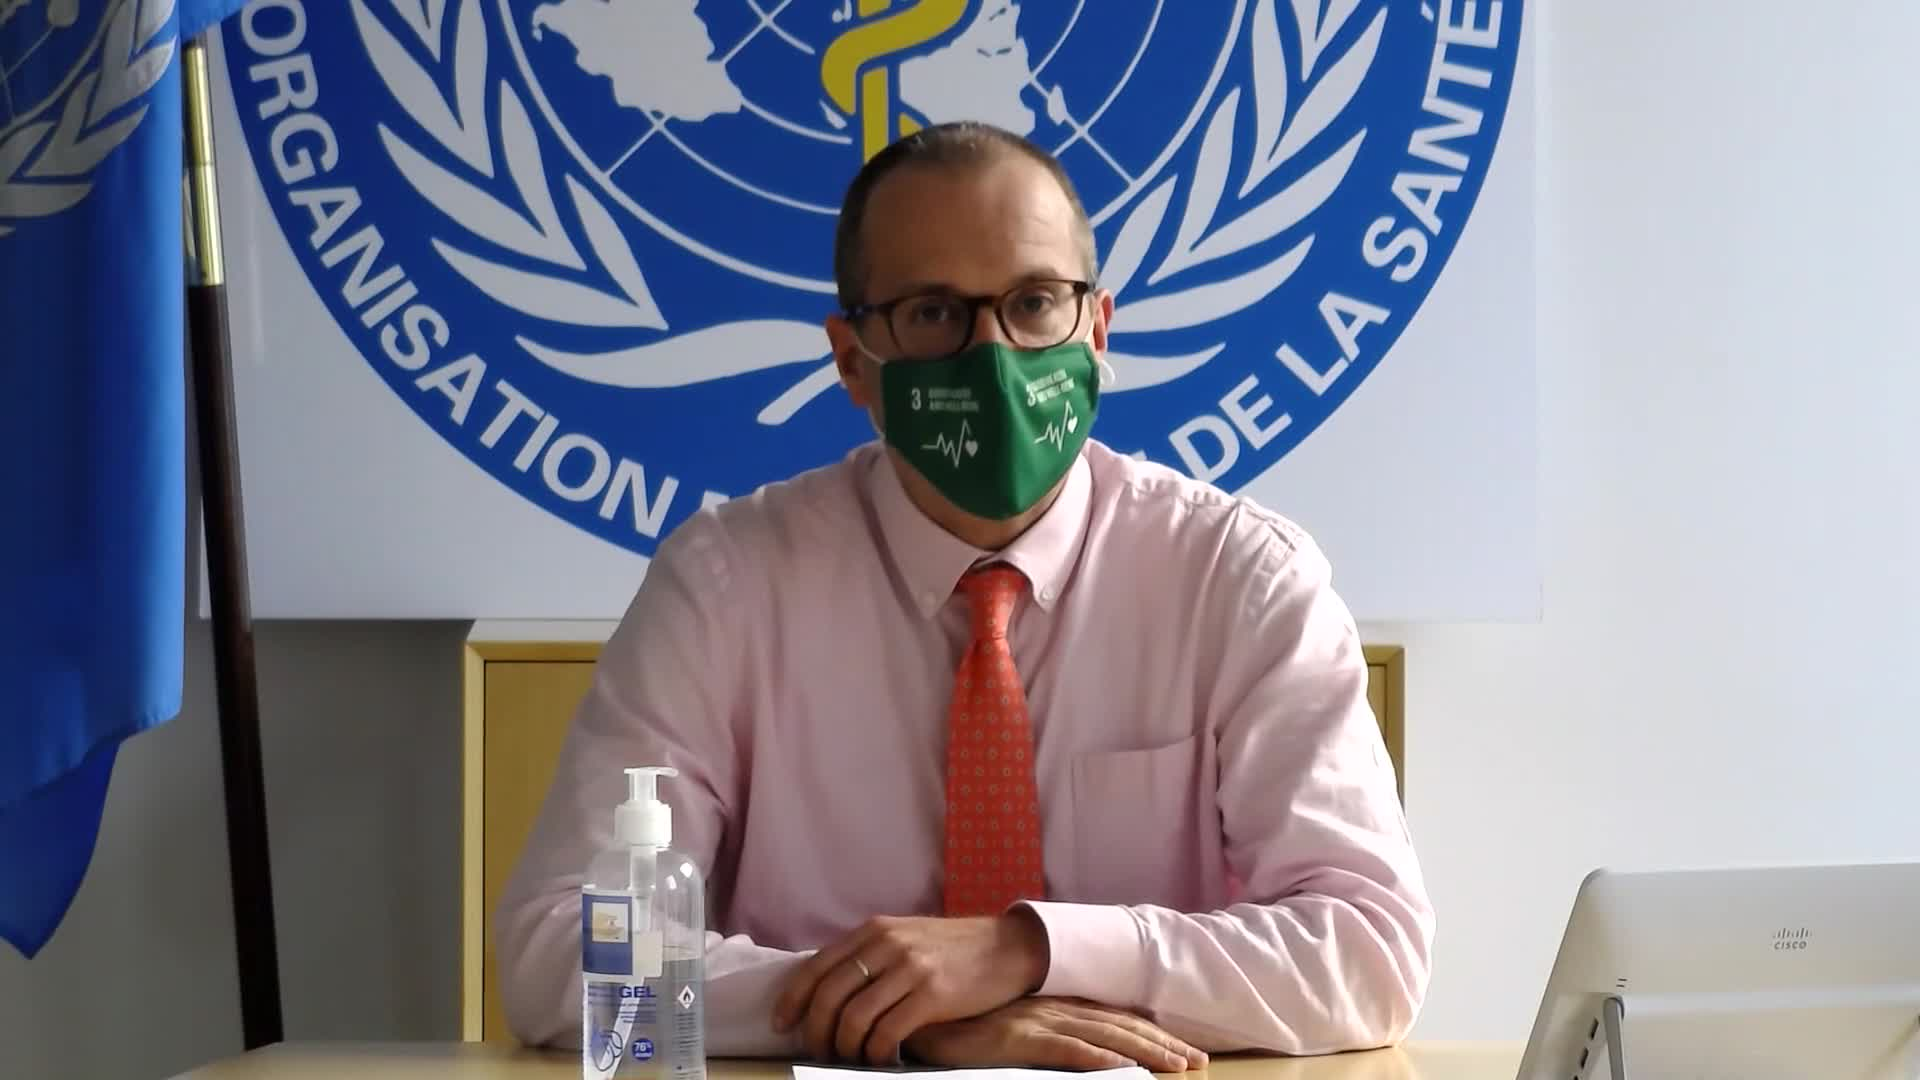 The World Health Organization's Europe Director, Hans Kluge, during an interview with CNN's Becky Anderson on October 16.